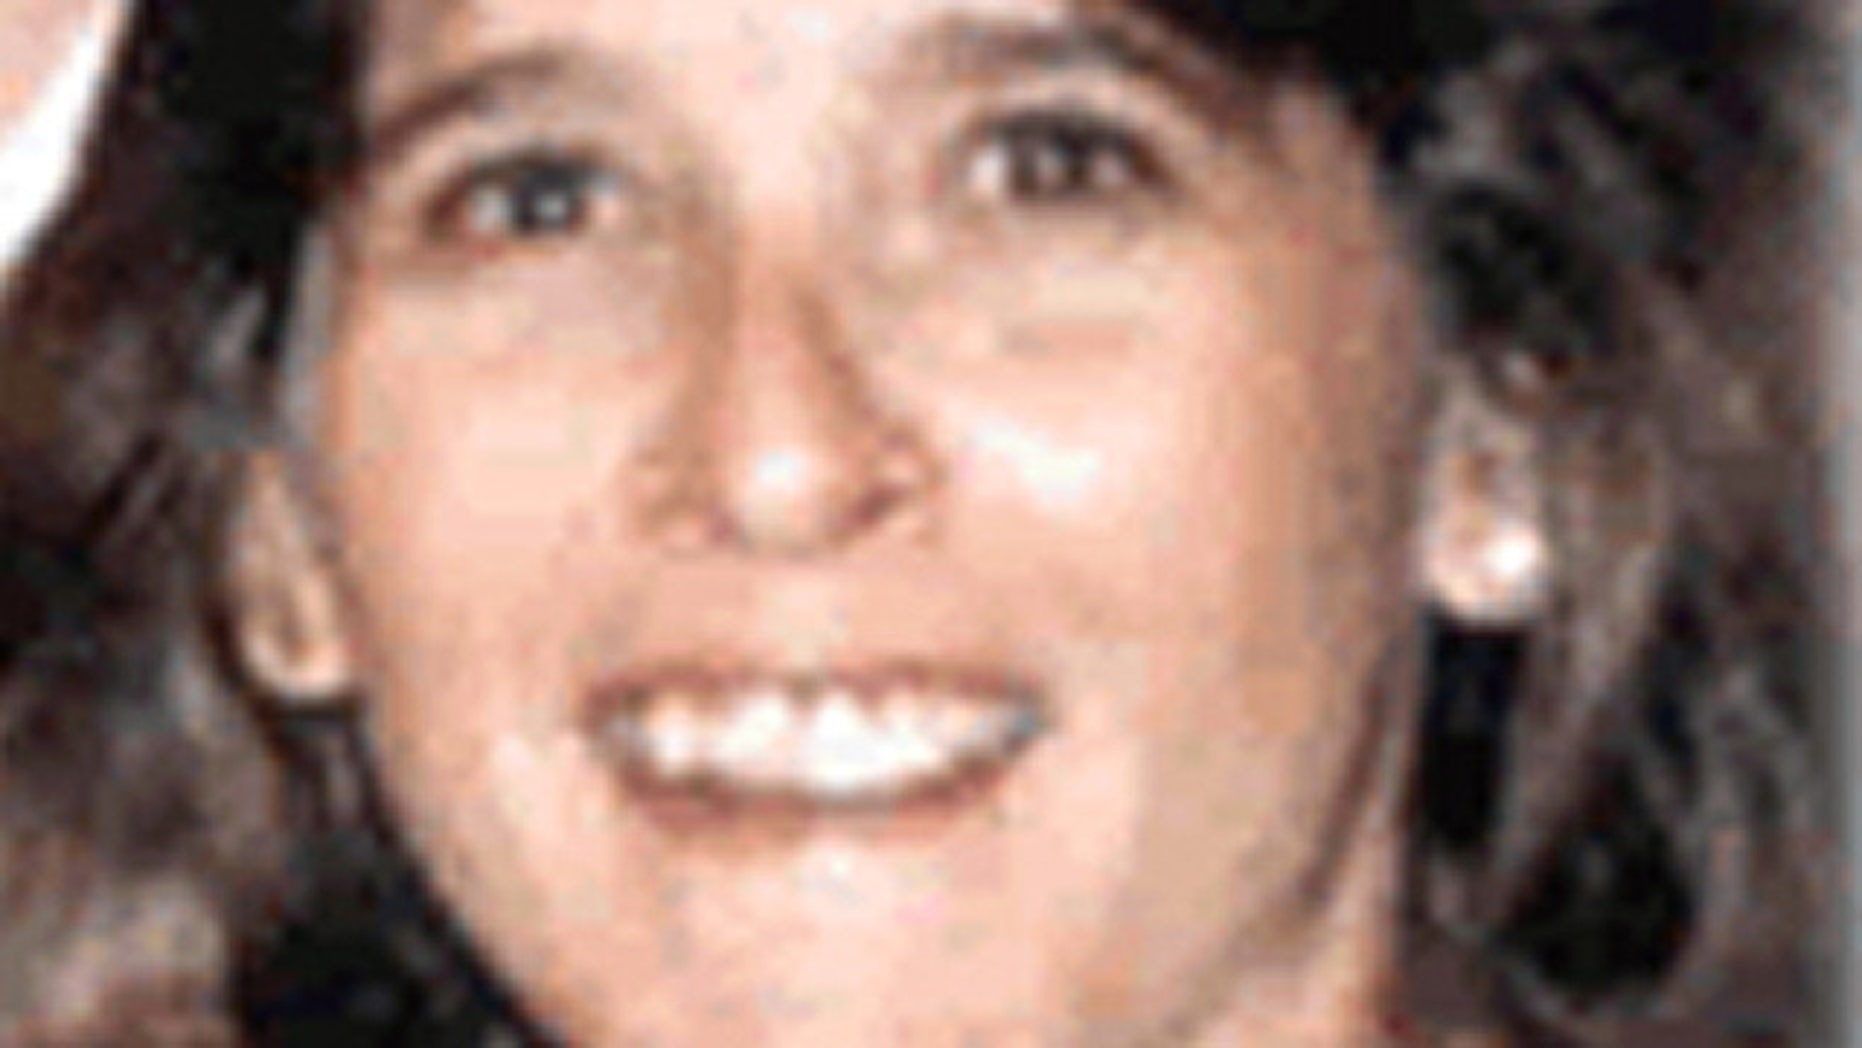 This undated family photo provided by the Austin police shows Debra Jan Baker, who was bludgeoned to death in her bed in North Austin in 1988. New DNA testing from another slaying suggests a Texas prosecutor, who has since become a district judge, may have deliberately withheld evidence that could have helped authorities find Baker's killer more than a year before her death.